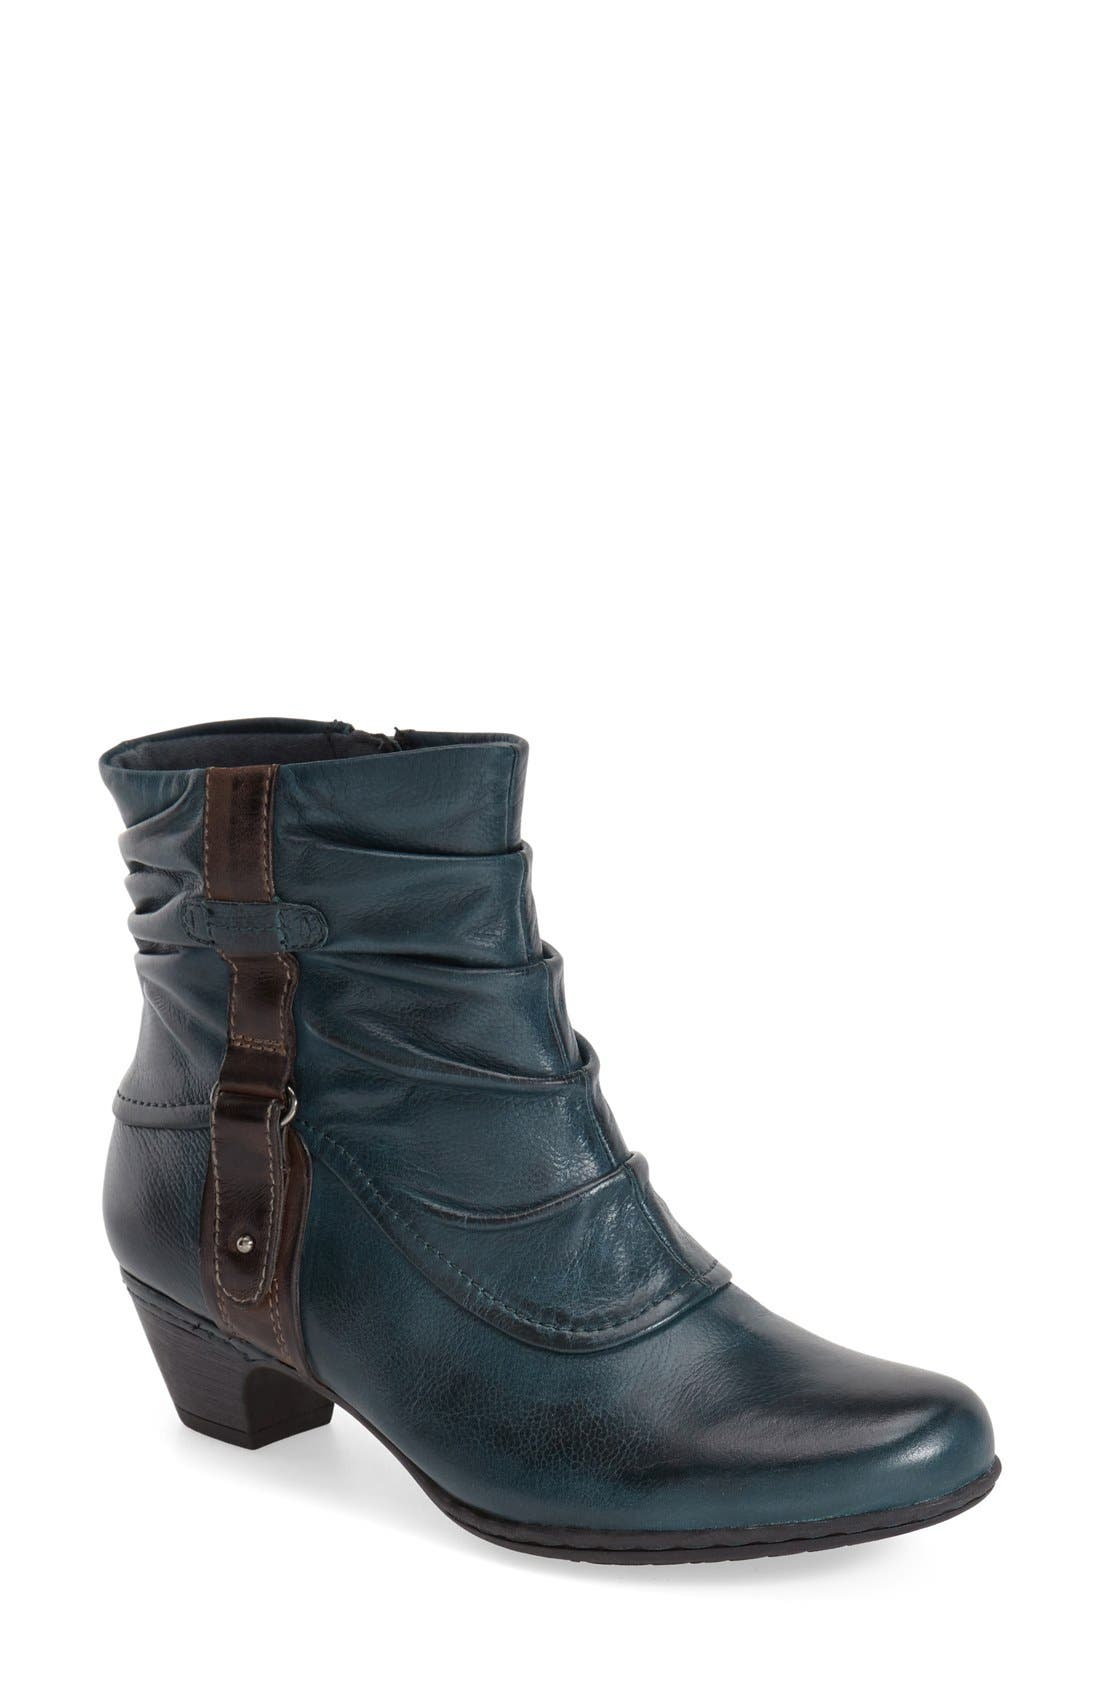 'Alexandra' Boot,                             Main thumbnail 1, color,                             BLUE/ TEAL LEATHER